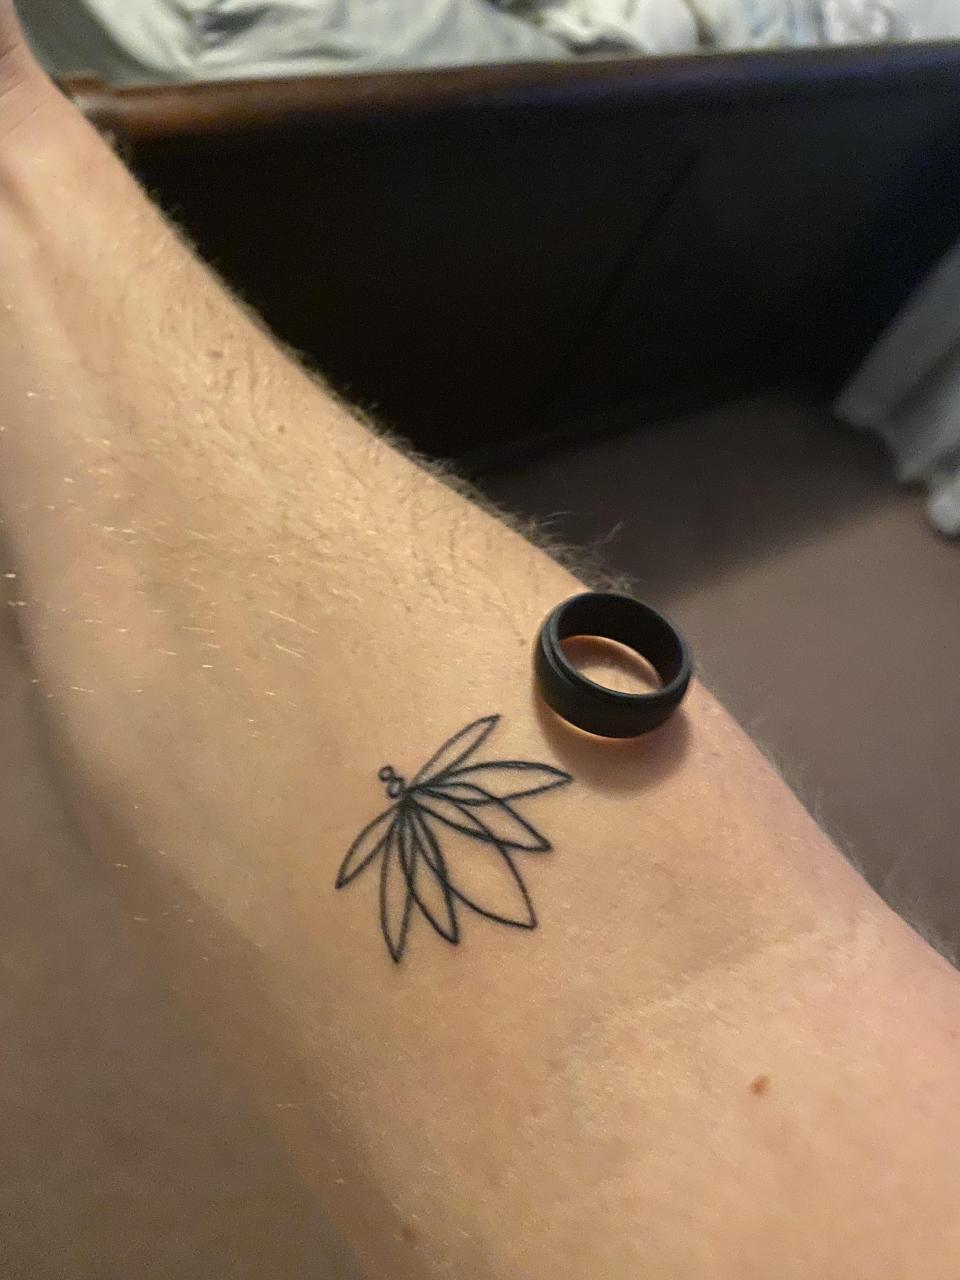 Please help/ can this be covered up my a dark actual lotus/ trusted someone I shouldn't have